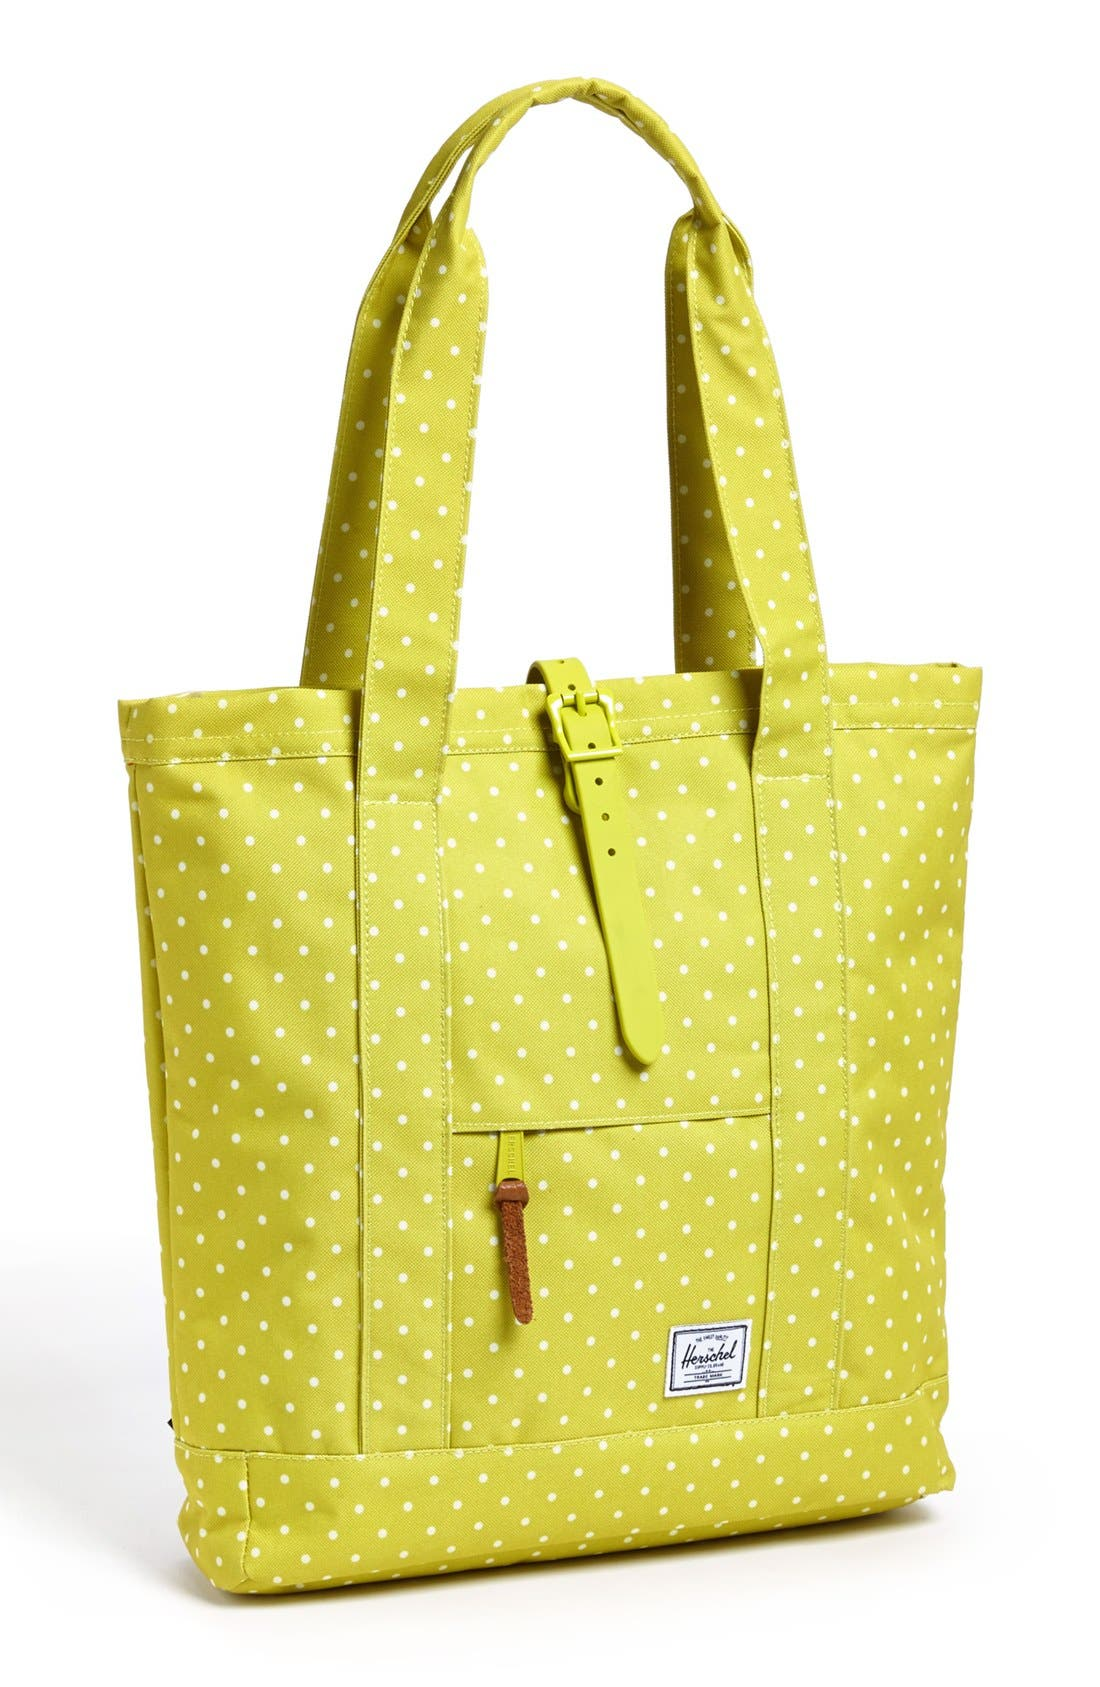 Alternate Image 1 Selected - Herschel Supply Co. 'Market' Canvas Tote